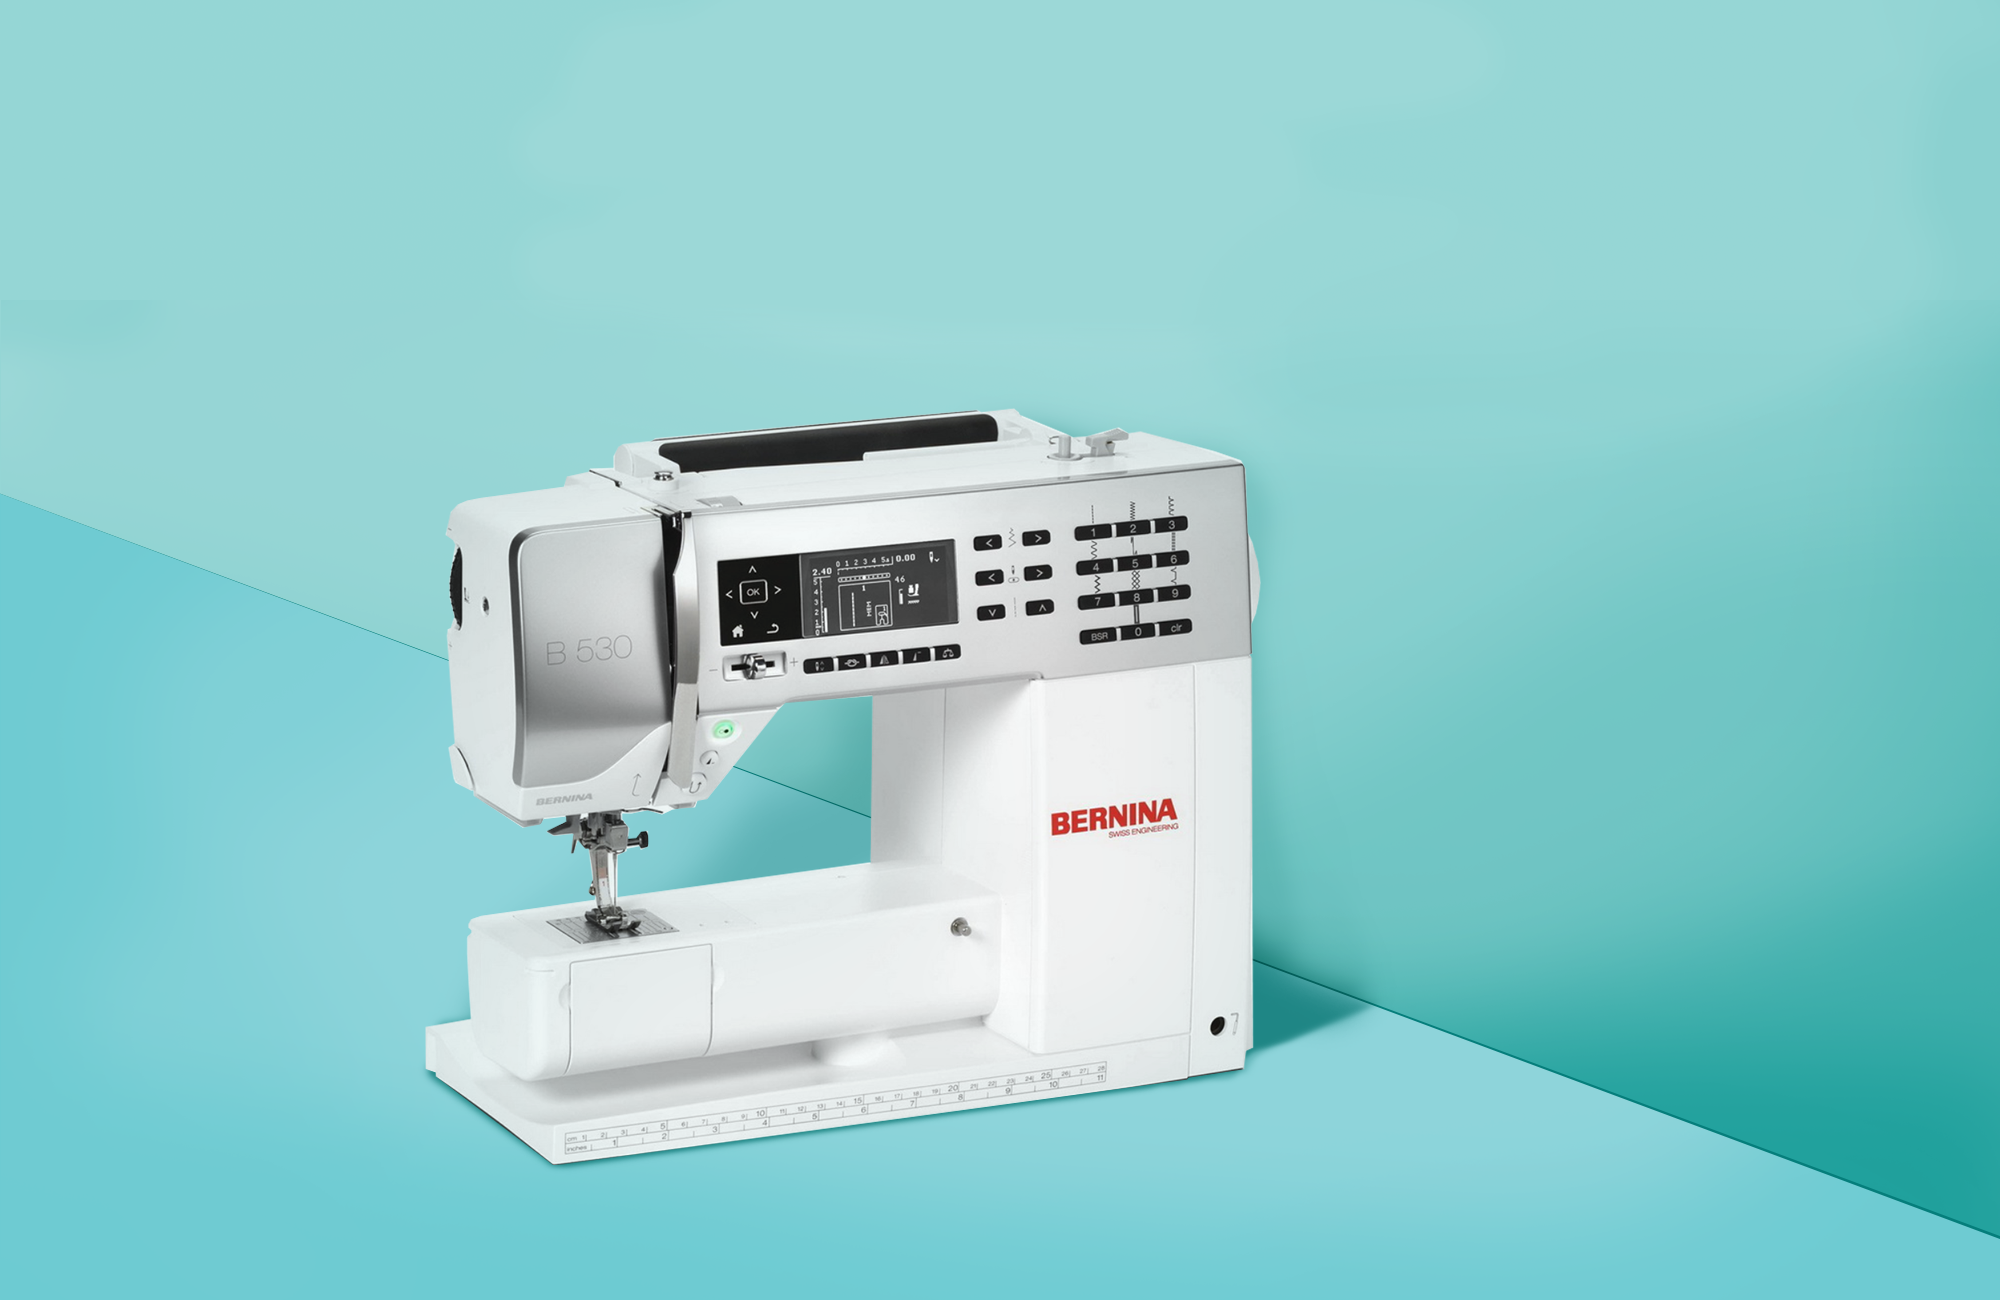 Finest Sewing Machine For Beginners For Sewing Face Masks